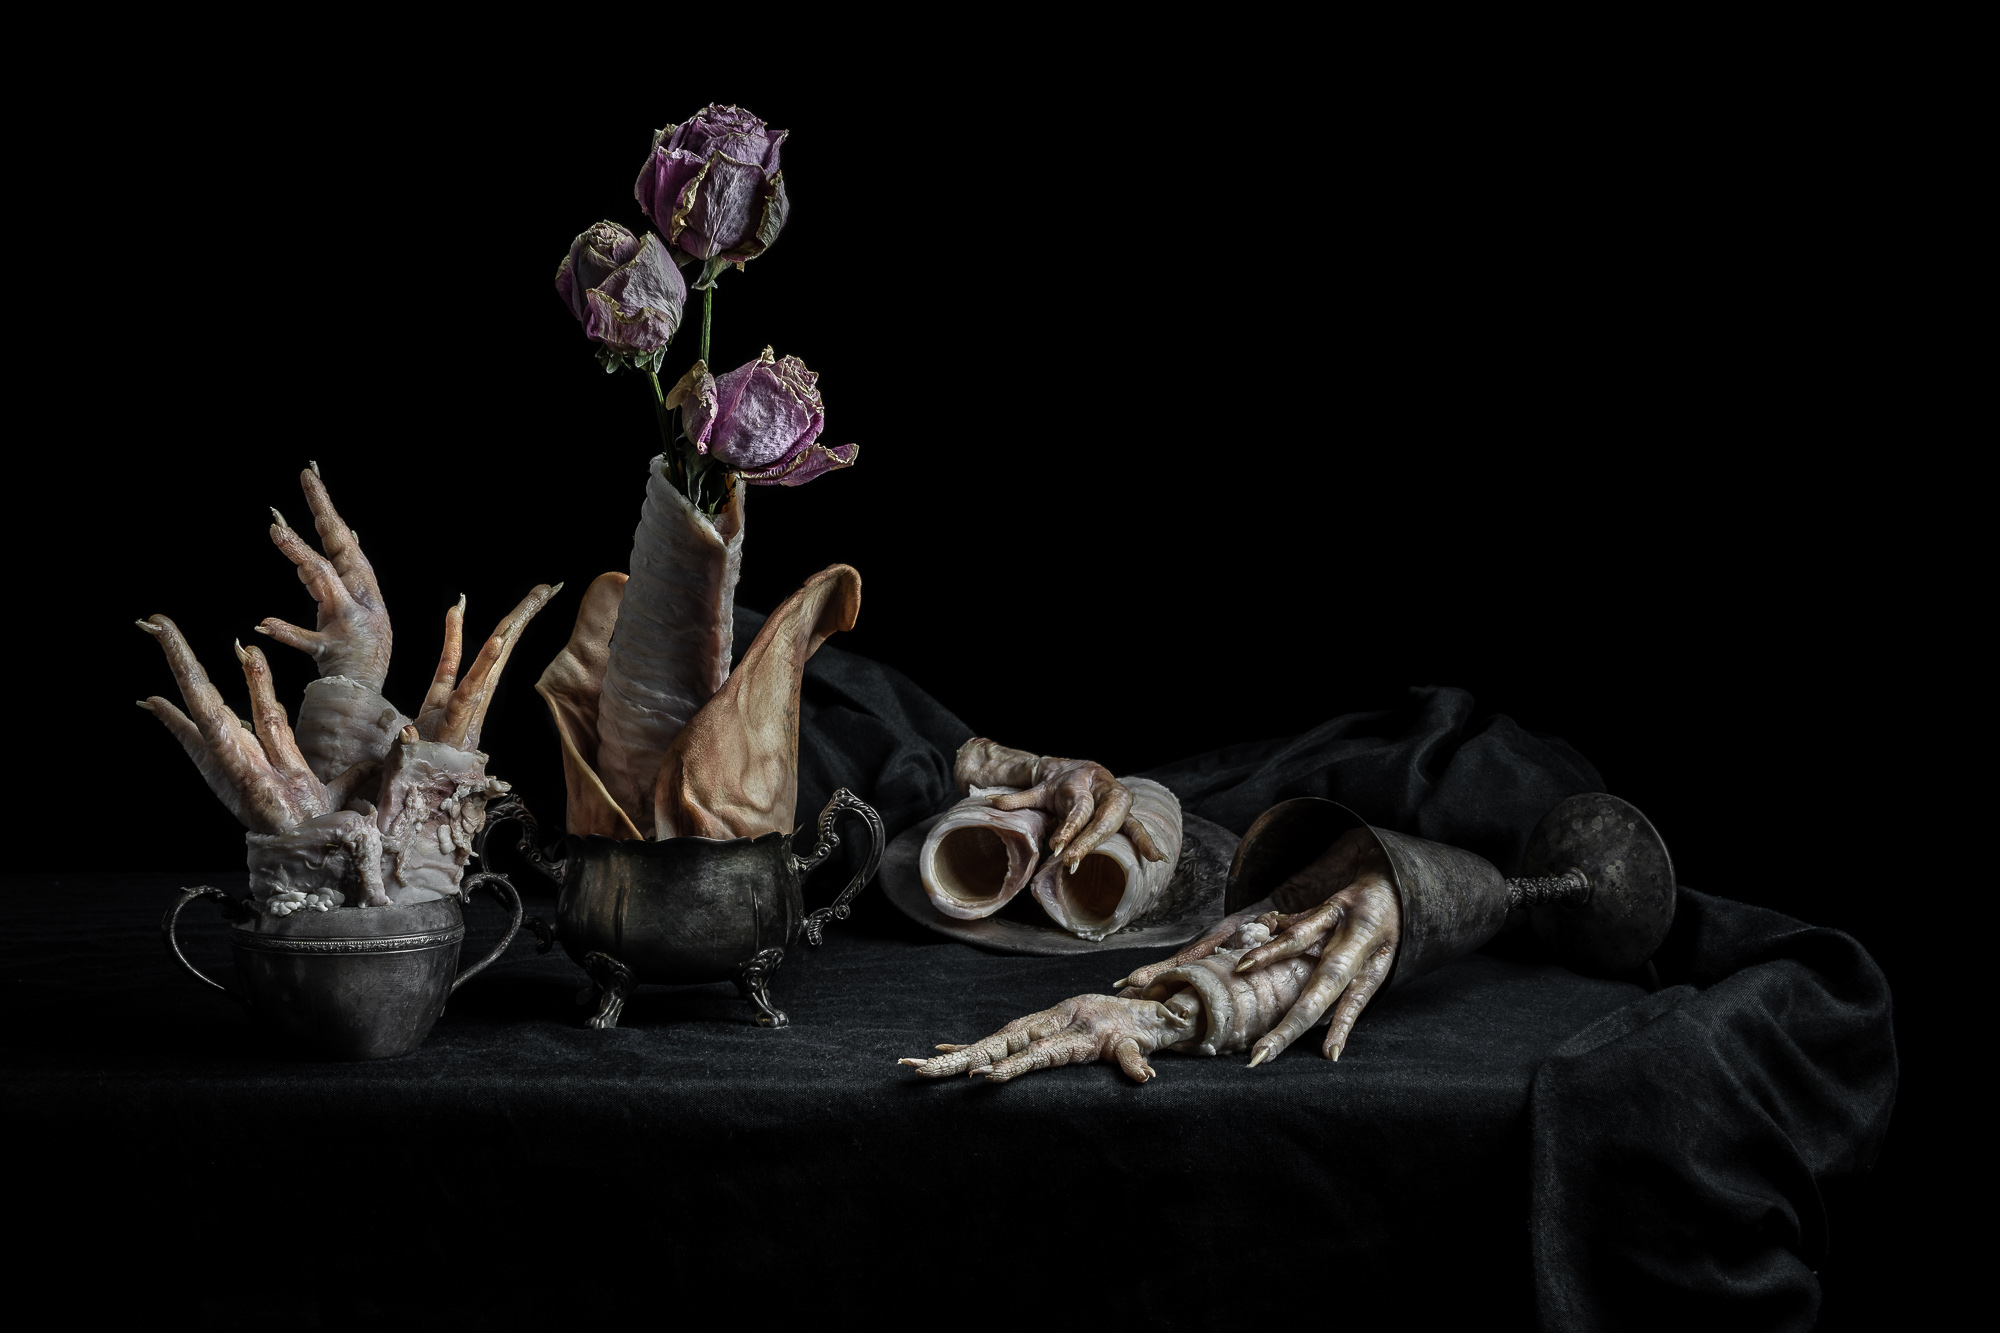 neal-auch-still-life-with-flowers-create-sub-4.jpg